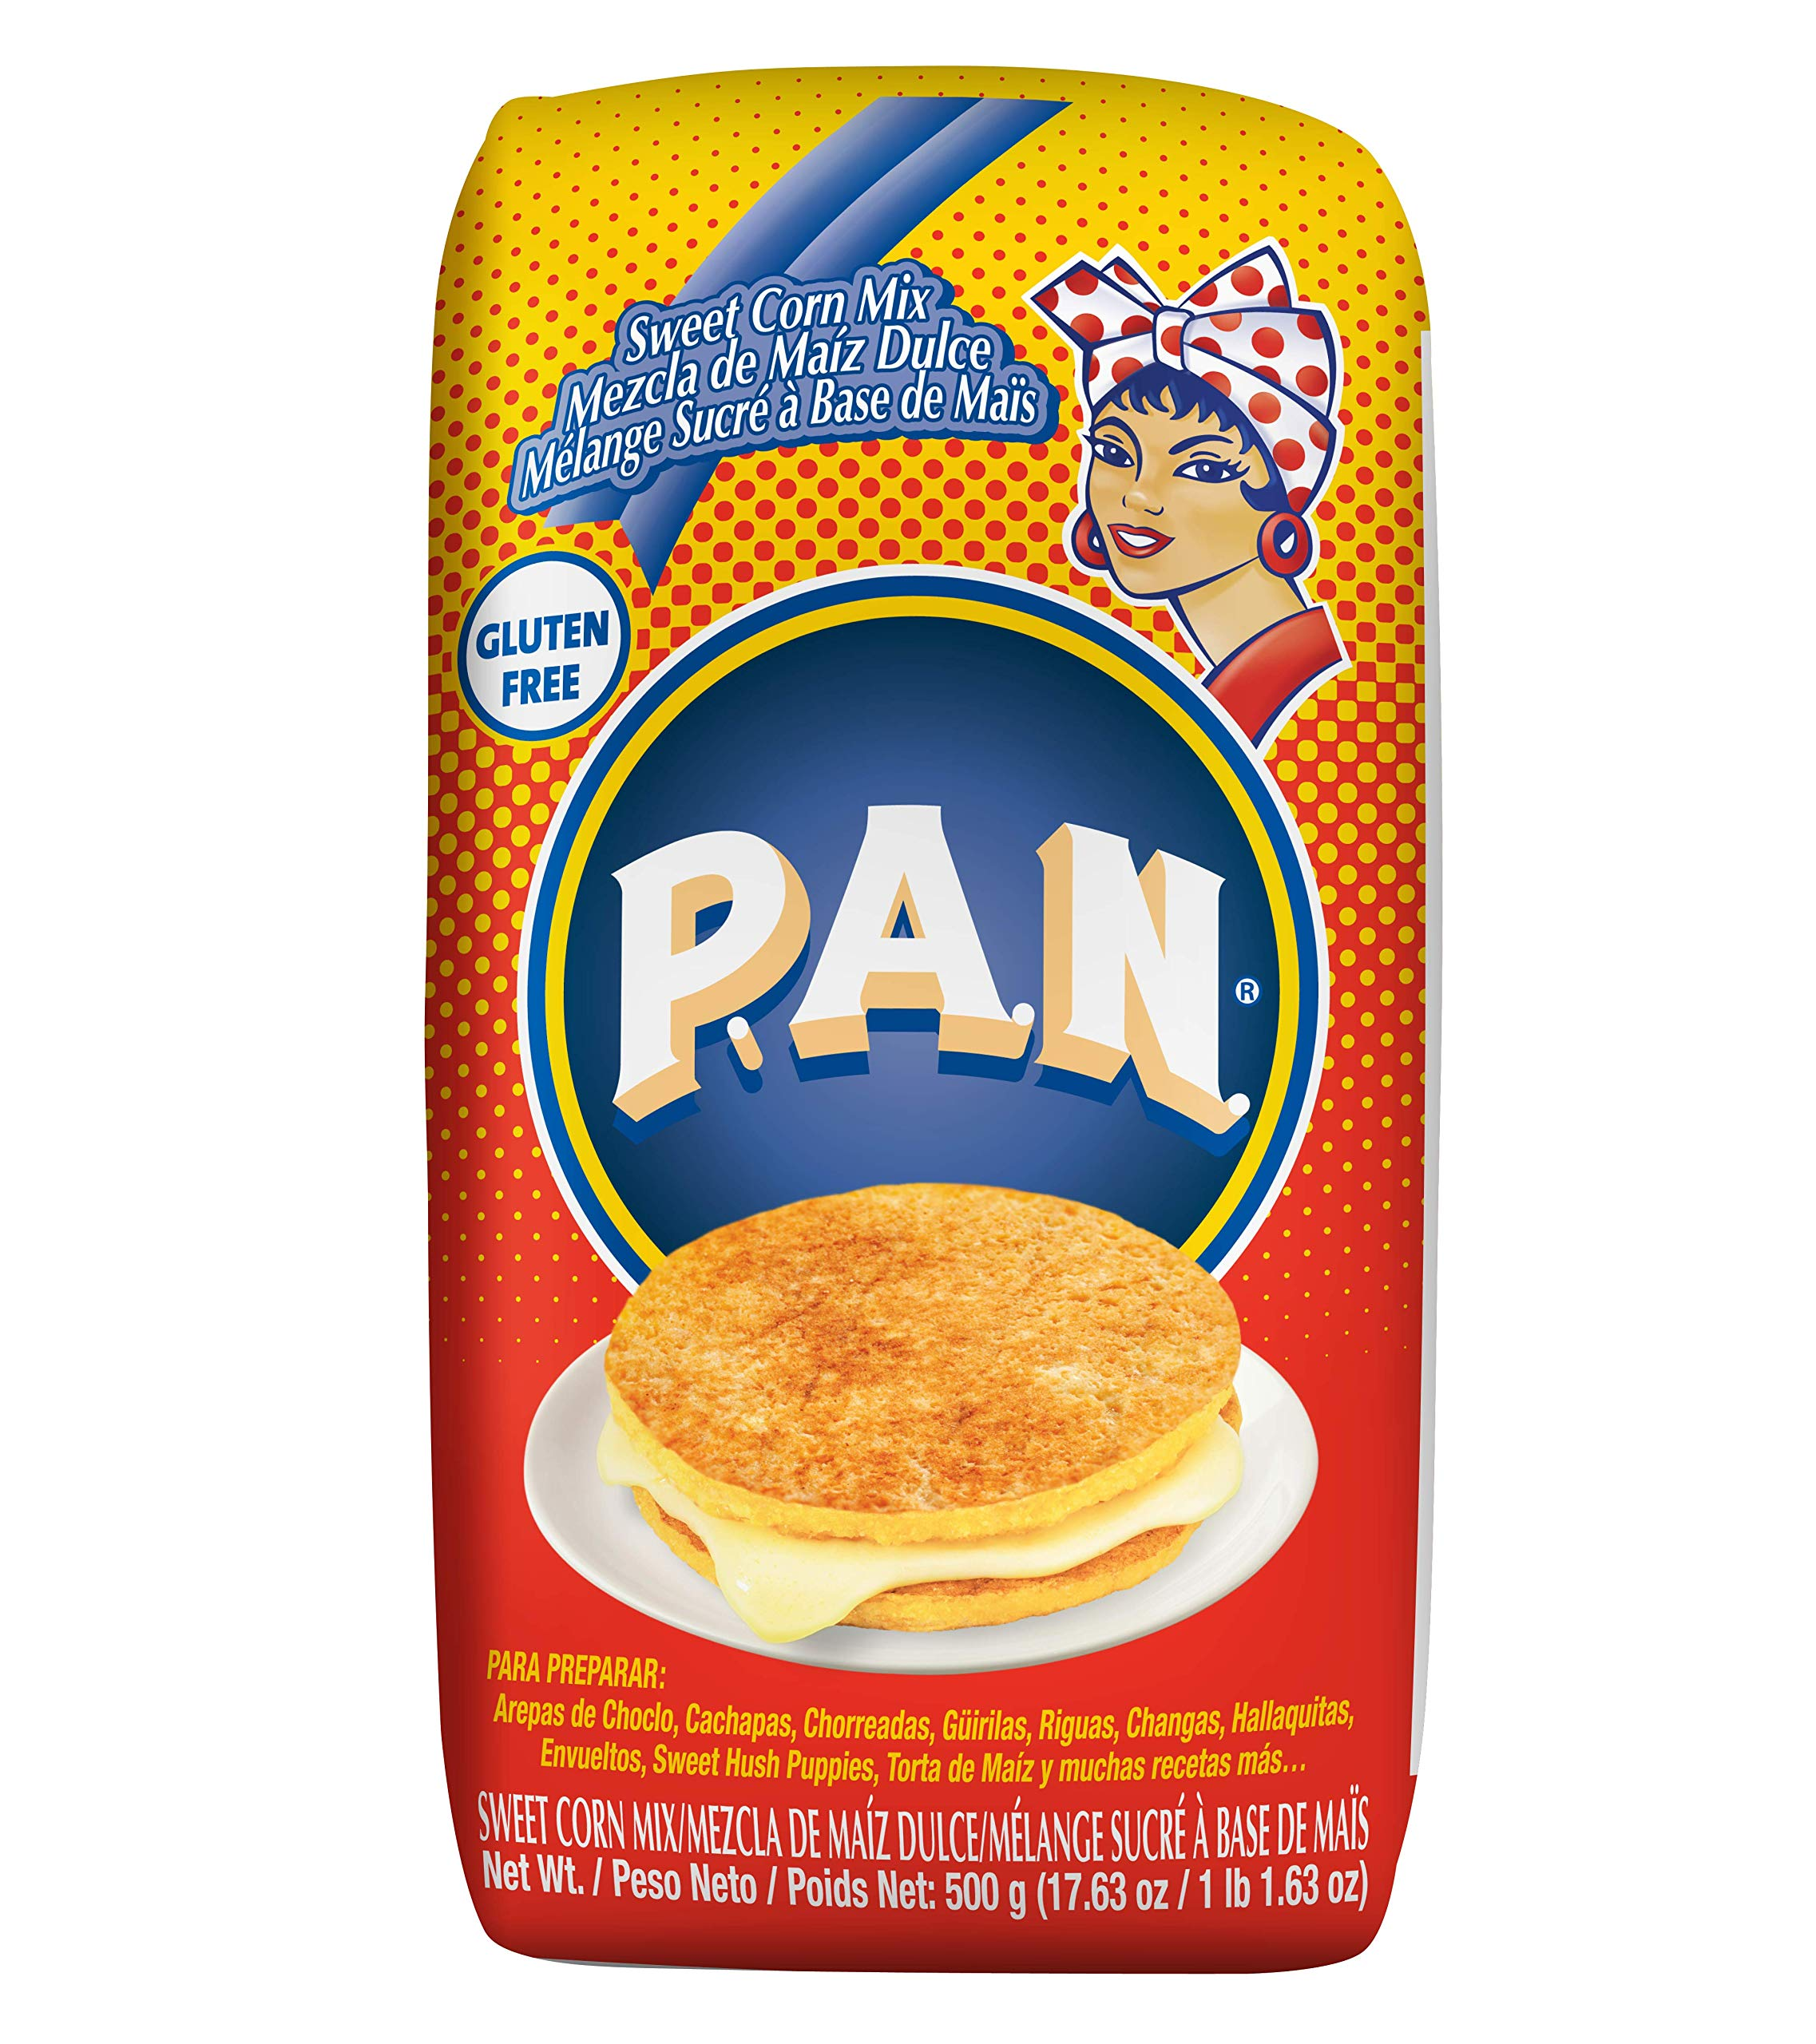 P.A.N. Sweet Corn Mix - Gluten Free and Kosher Mixture for Cachapas, 500 Grams (17.63 Ounces / 1 Pound 1.63 Ounces) (Pack of 12) by P.A.N.